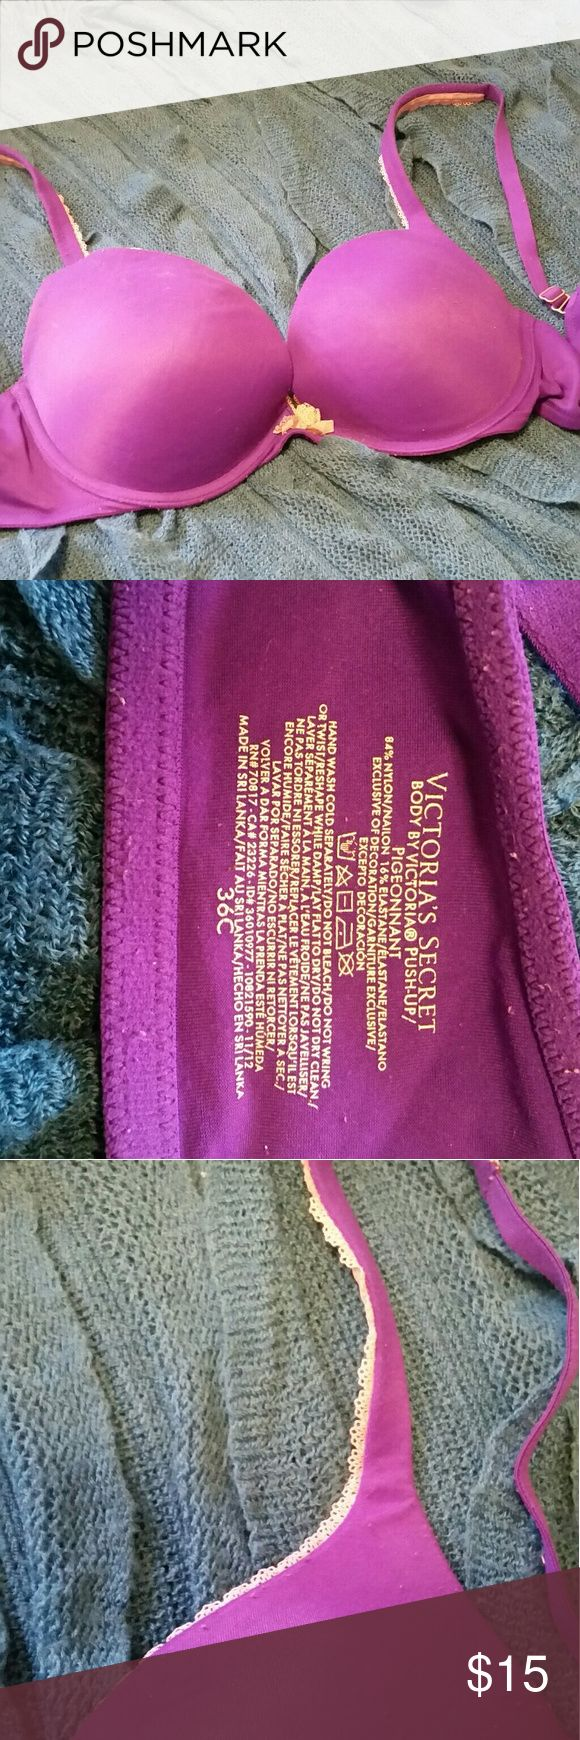 **BOGO Item** VS Bra BOGO Free Item*** Buy any item in the closet of equal or greater value and I'll include this item FREE!!  Purple Body by Victoria bra. Push up and underwire. Good used condition, some pilling visible in the photos. Still has a lot of life left! Victoria's Secret Intimates & Sleepwear Bras